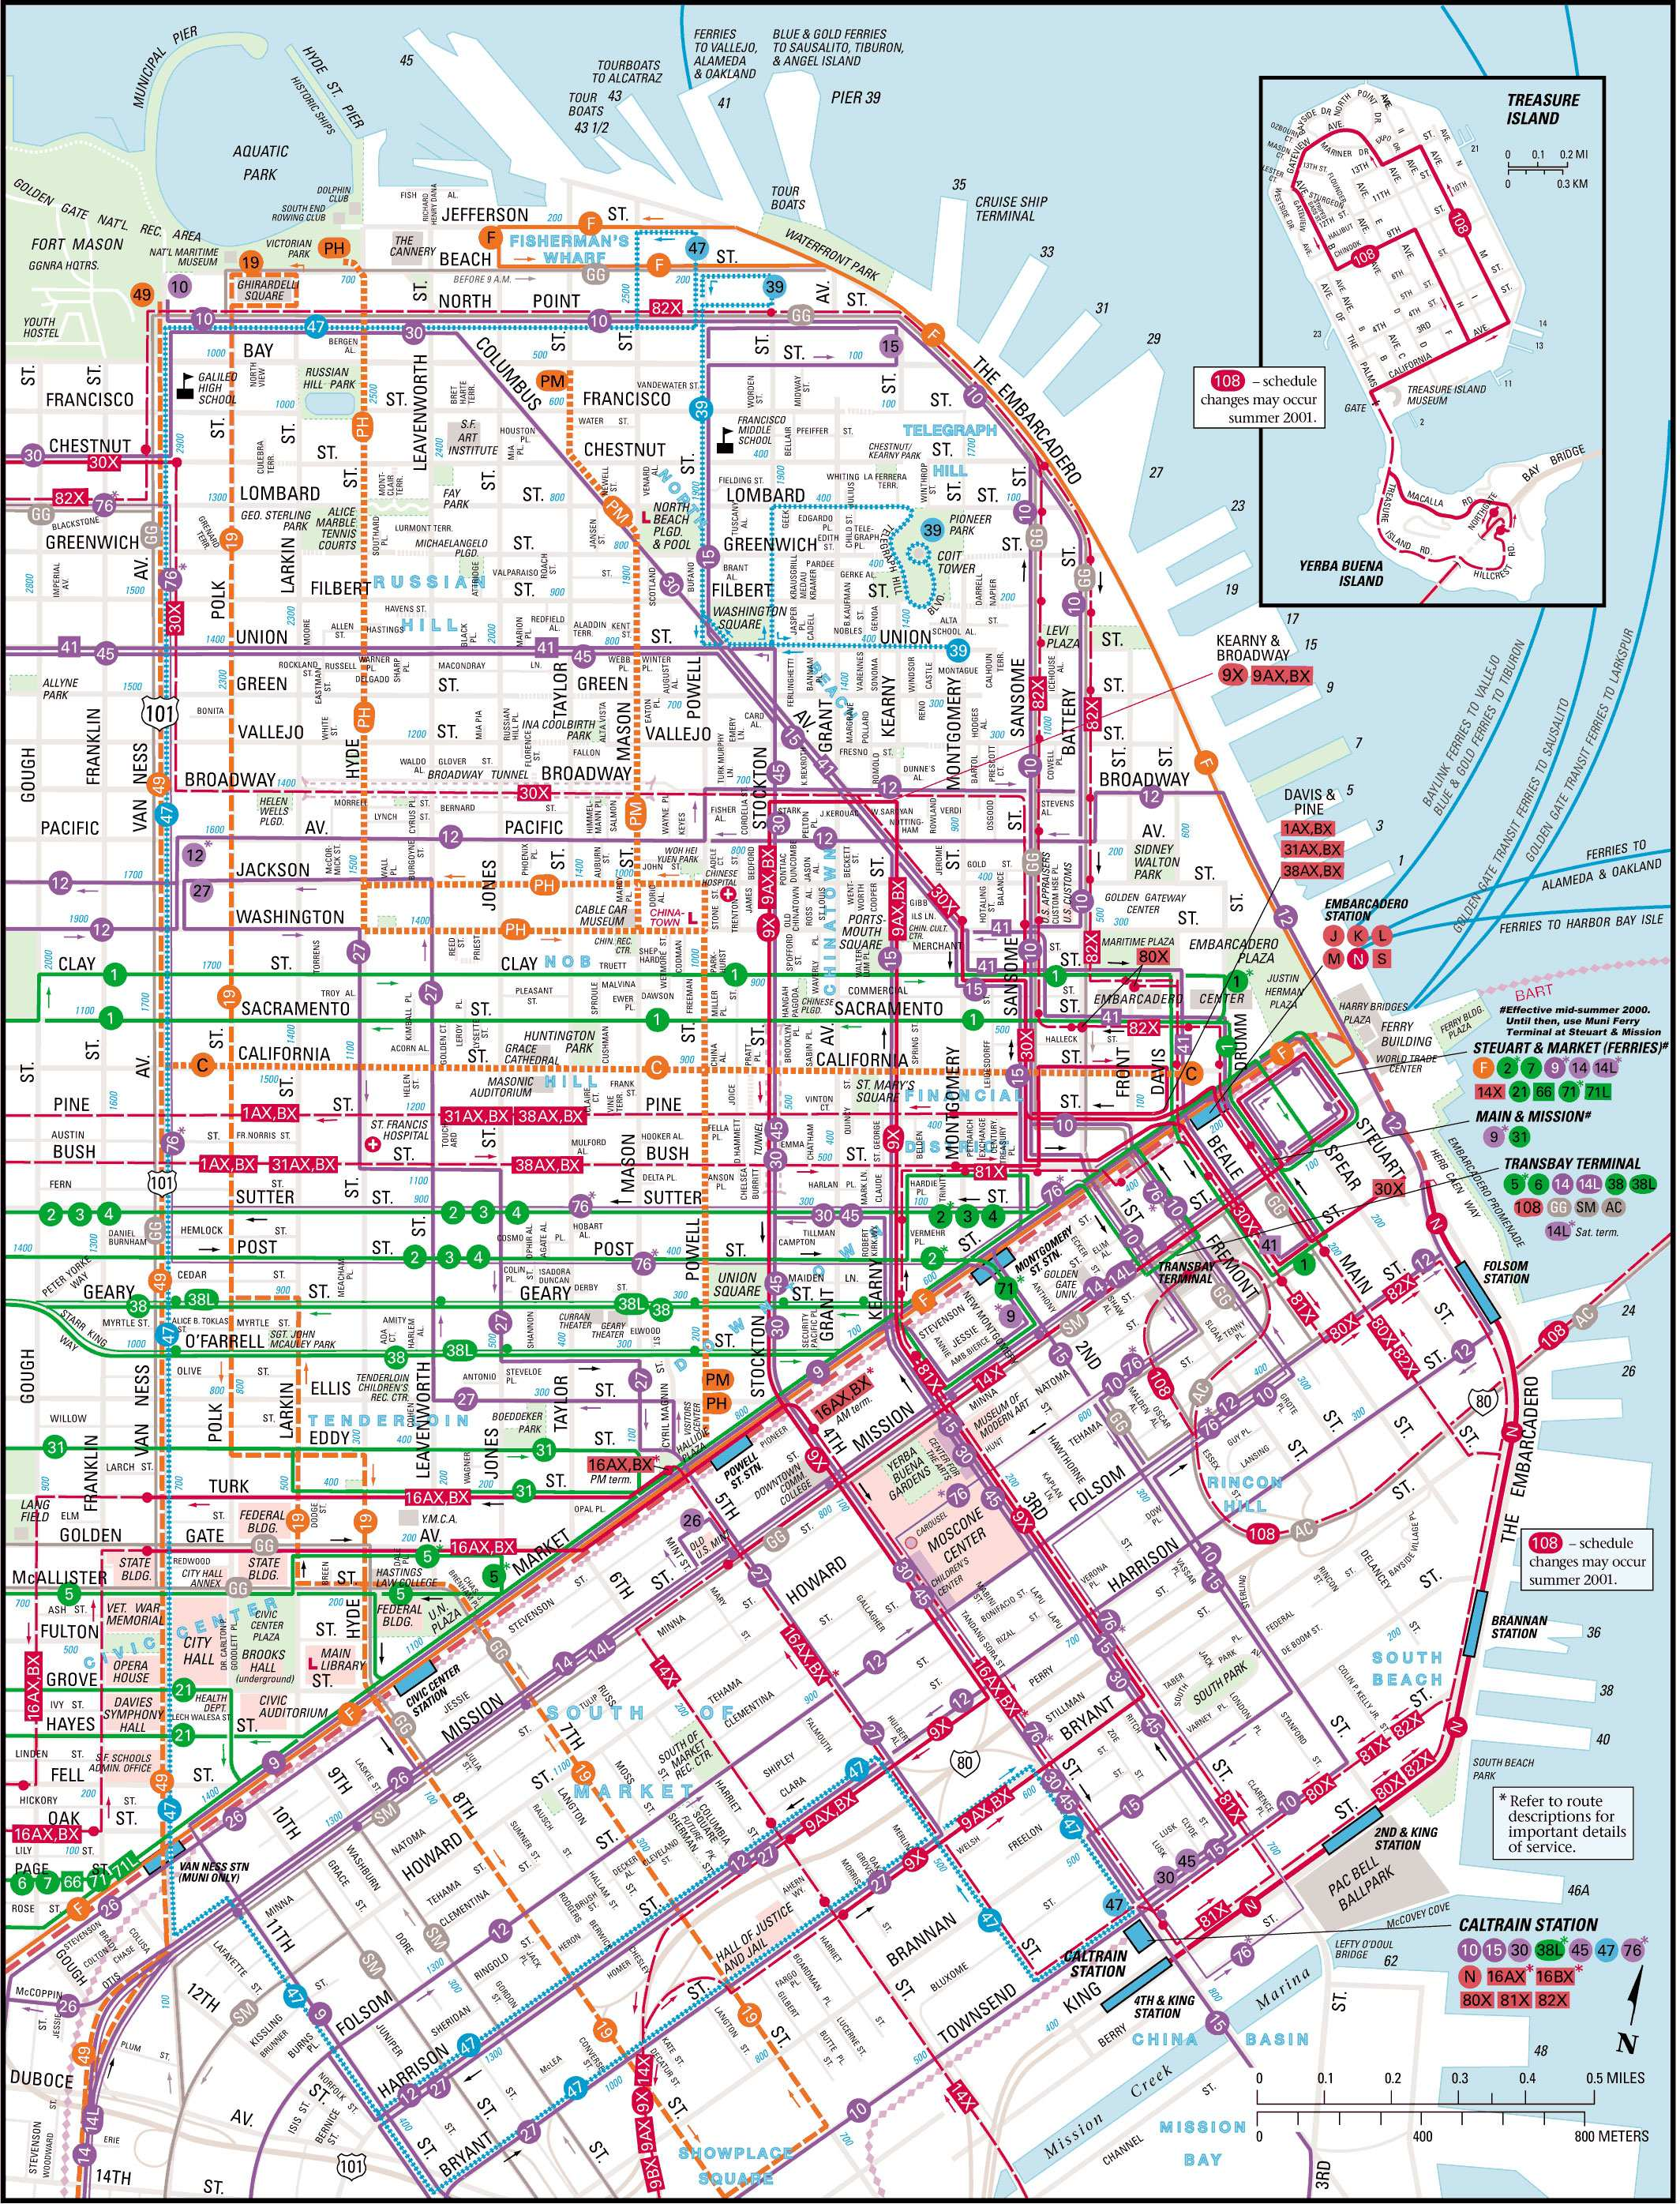 Large San Francisco Maps For Free Download And Print High Resolution And Detailed Maps